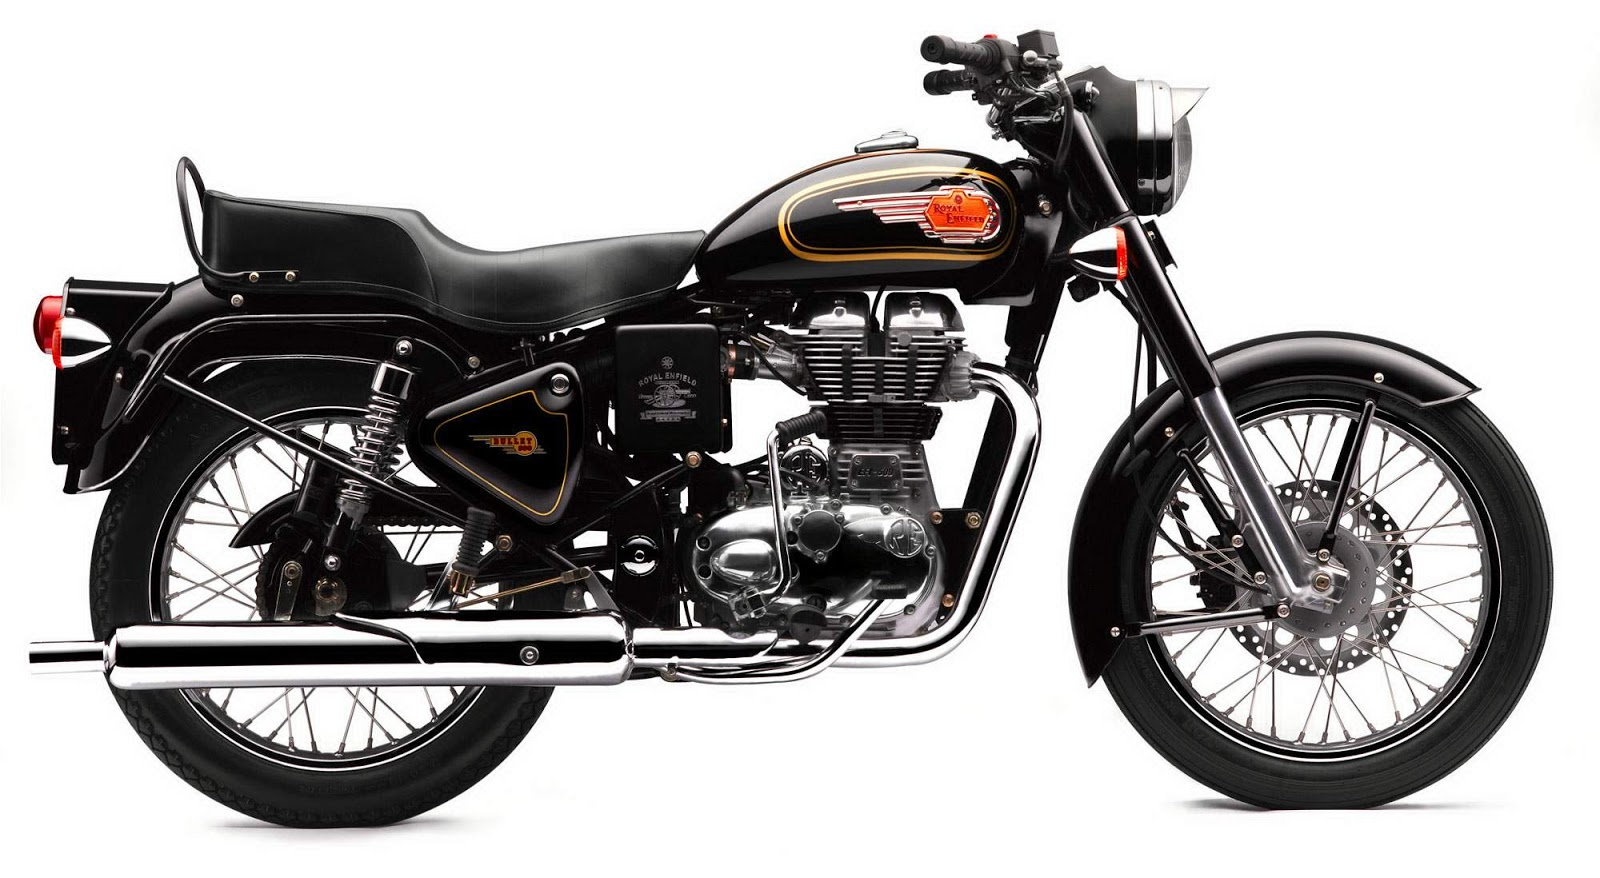 Hd wallpaper royal enfield - Top 22 Royal Enfield Bullet 350 Hd Images